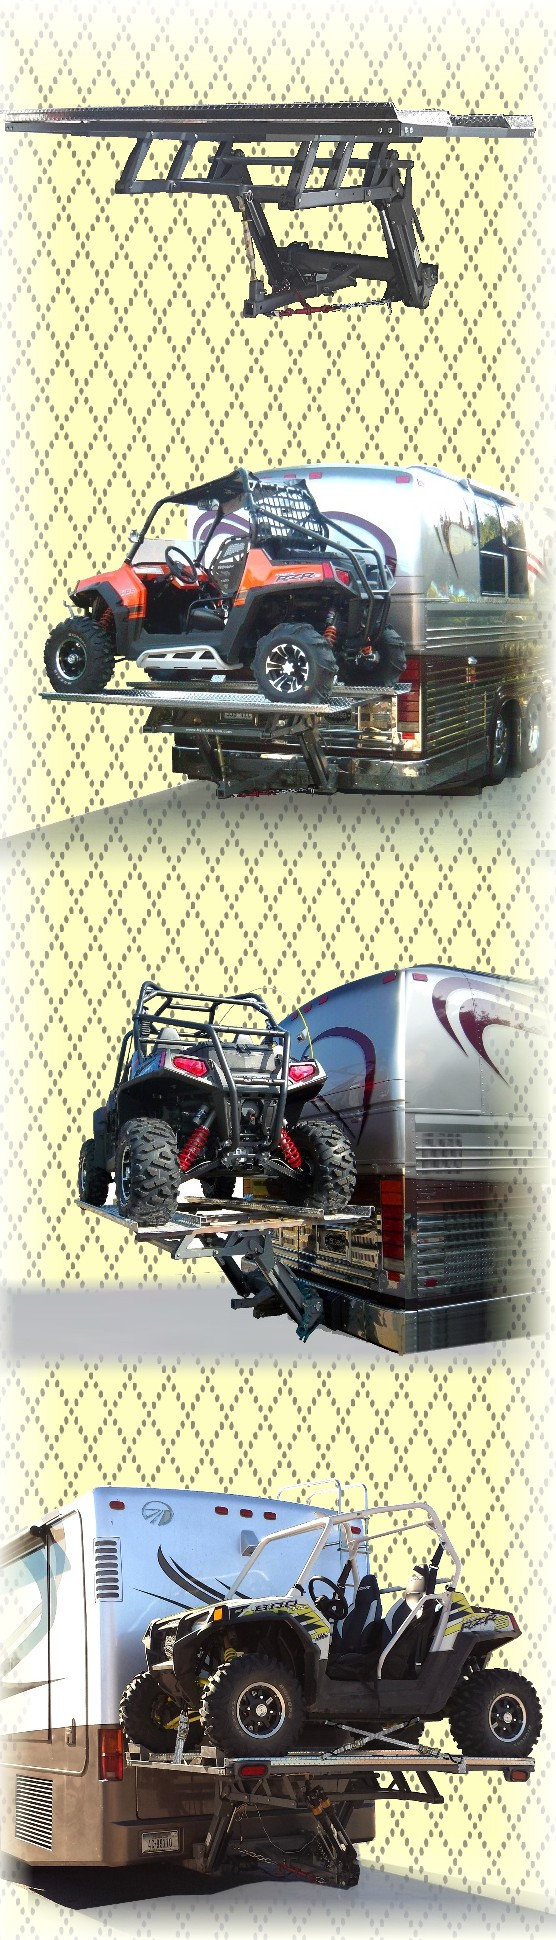 RZR lift for motorhome